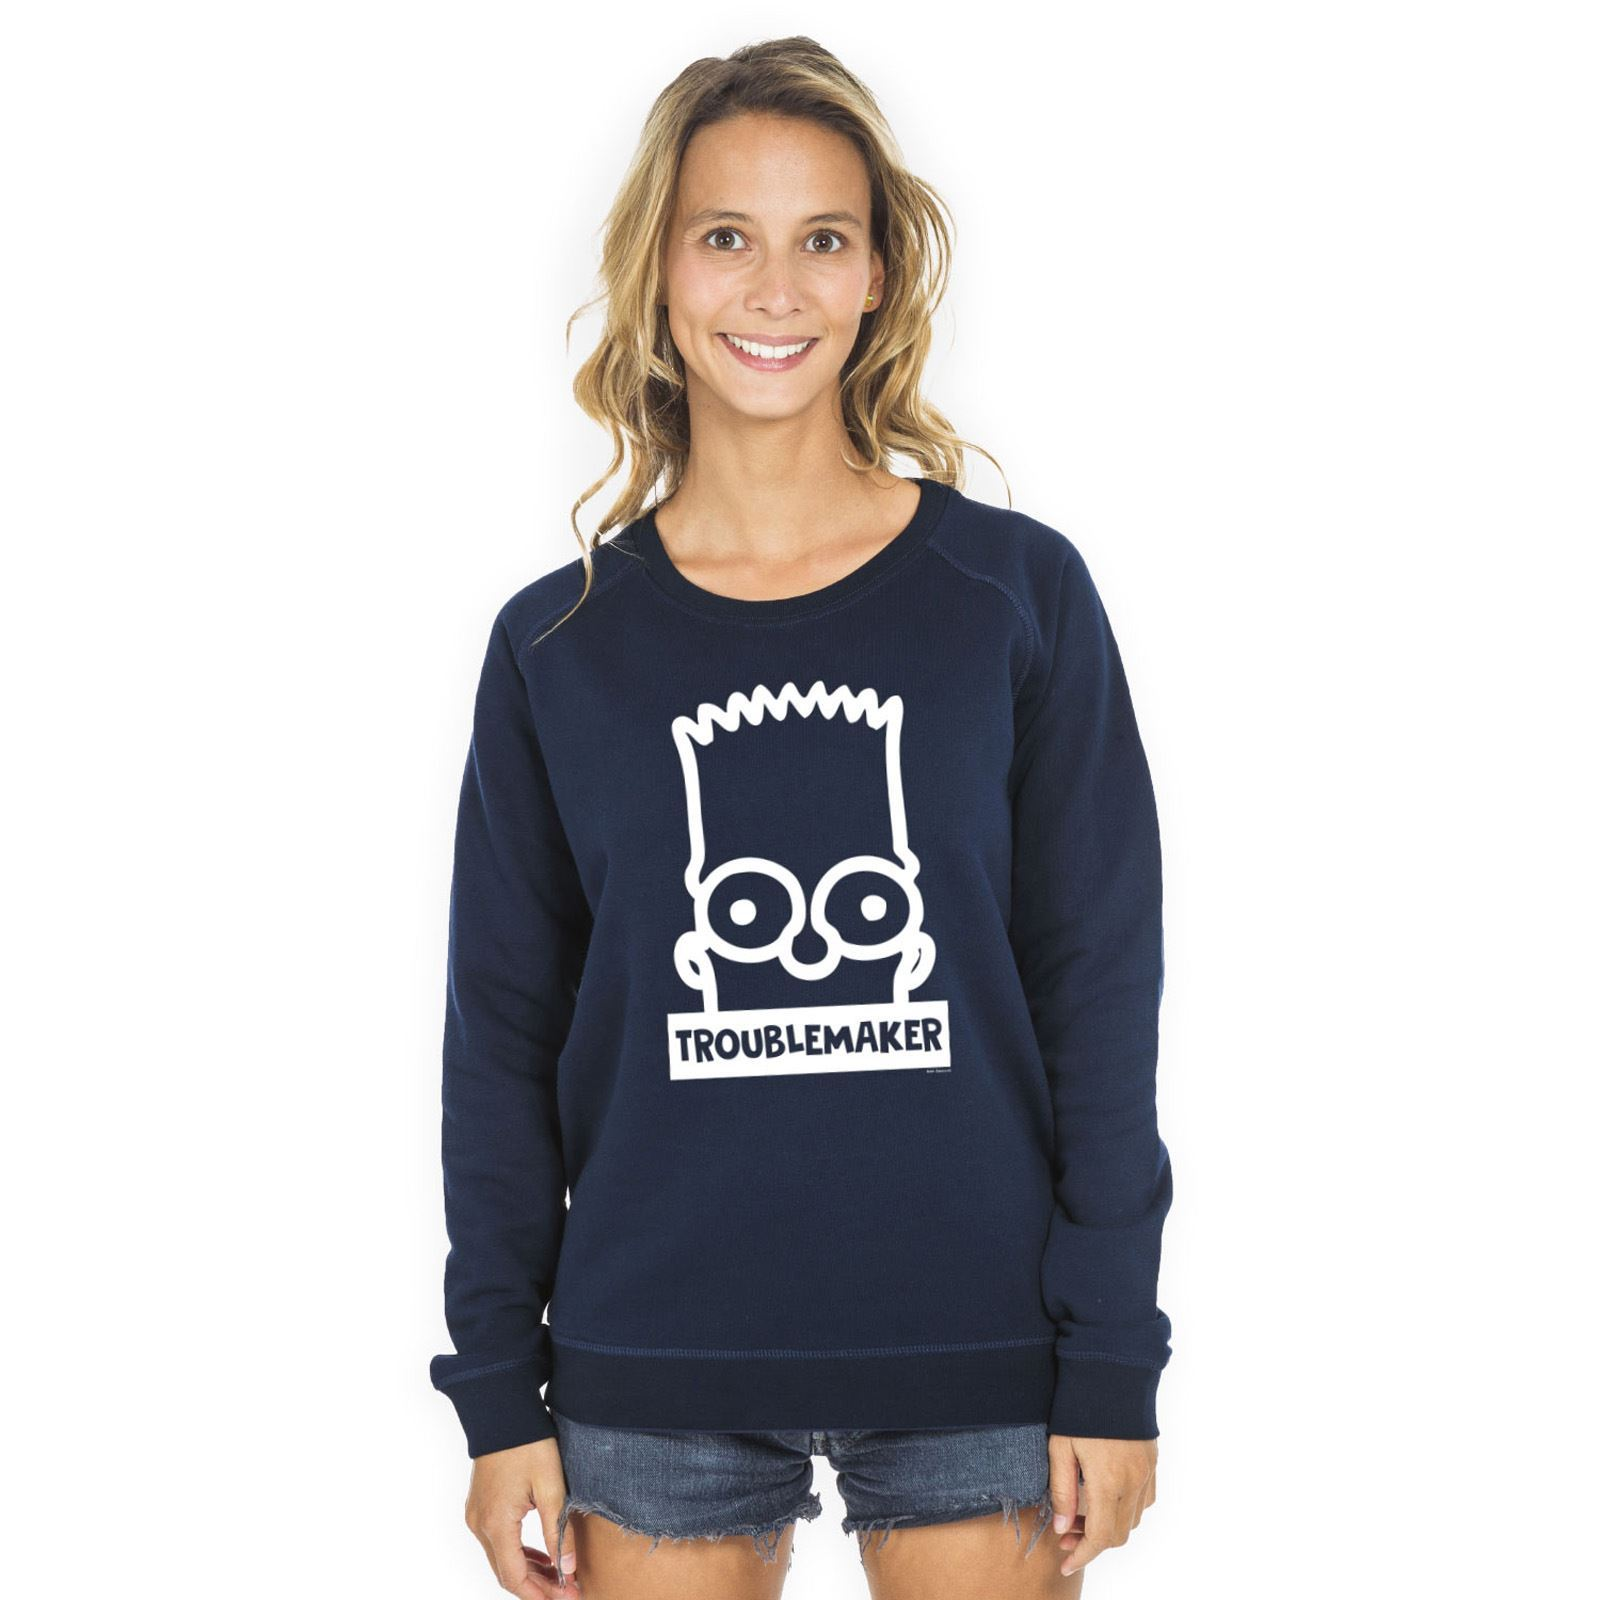 Simpson Troublemaker Sweat Marine shirt Les Bleu qZUdvSxZw